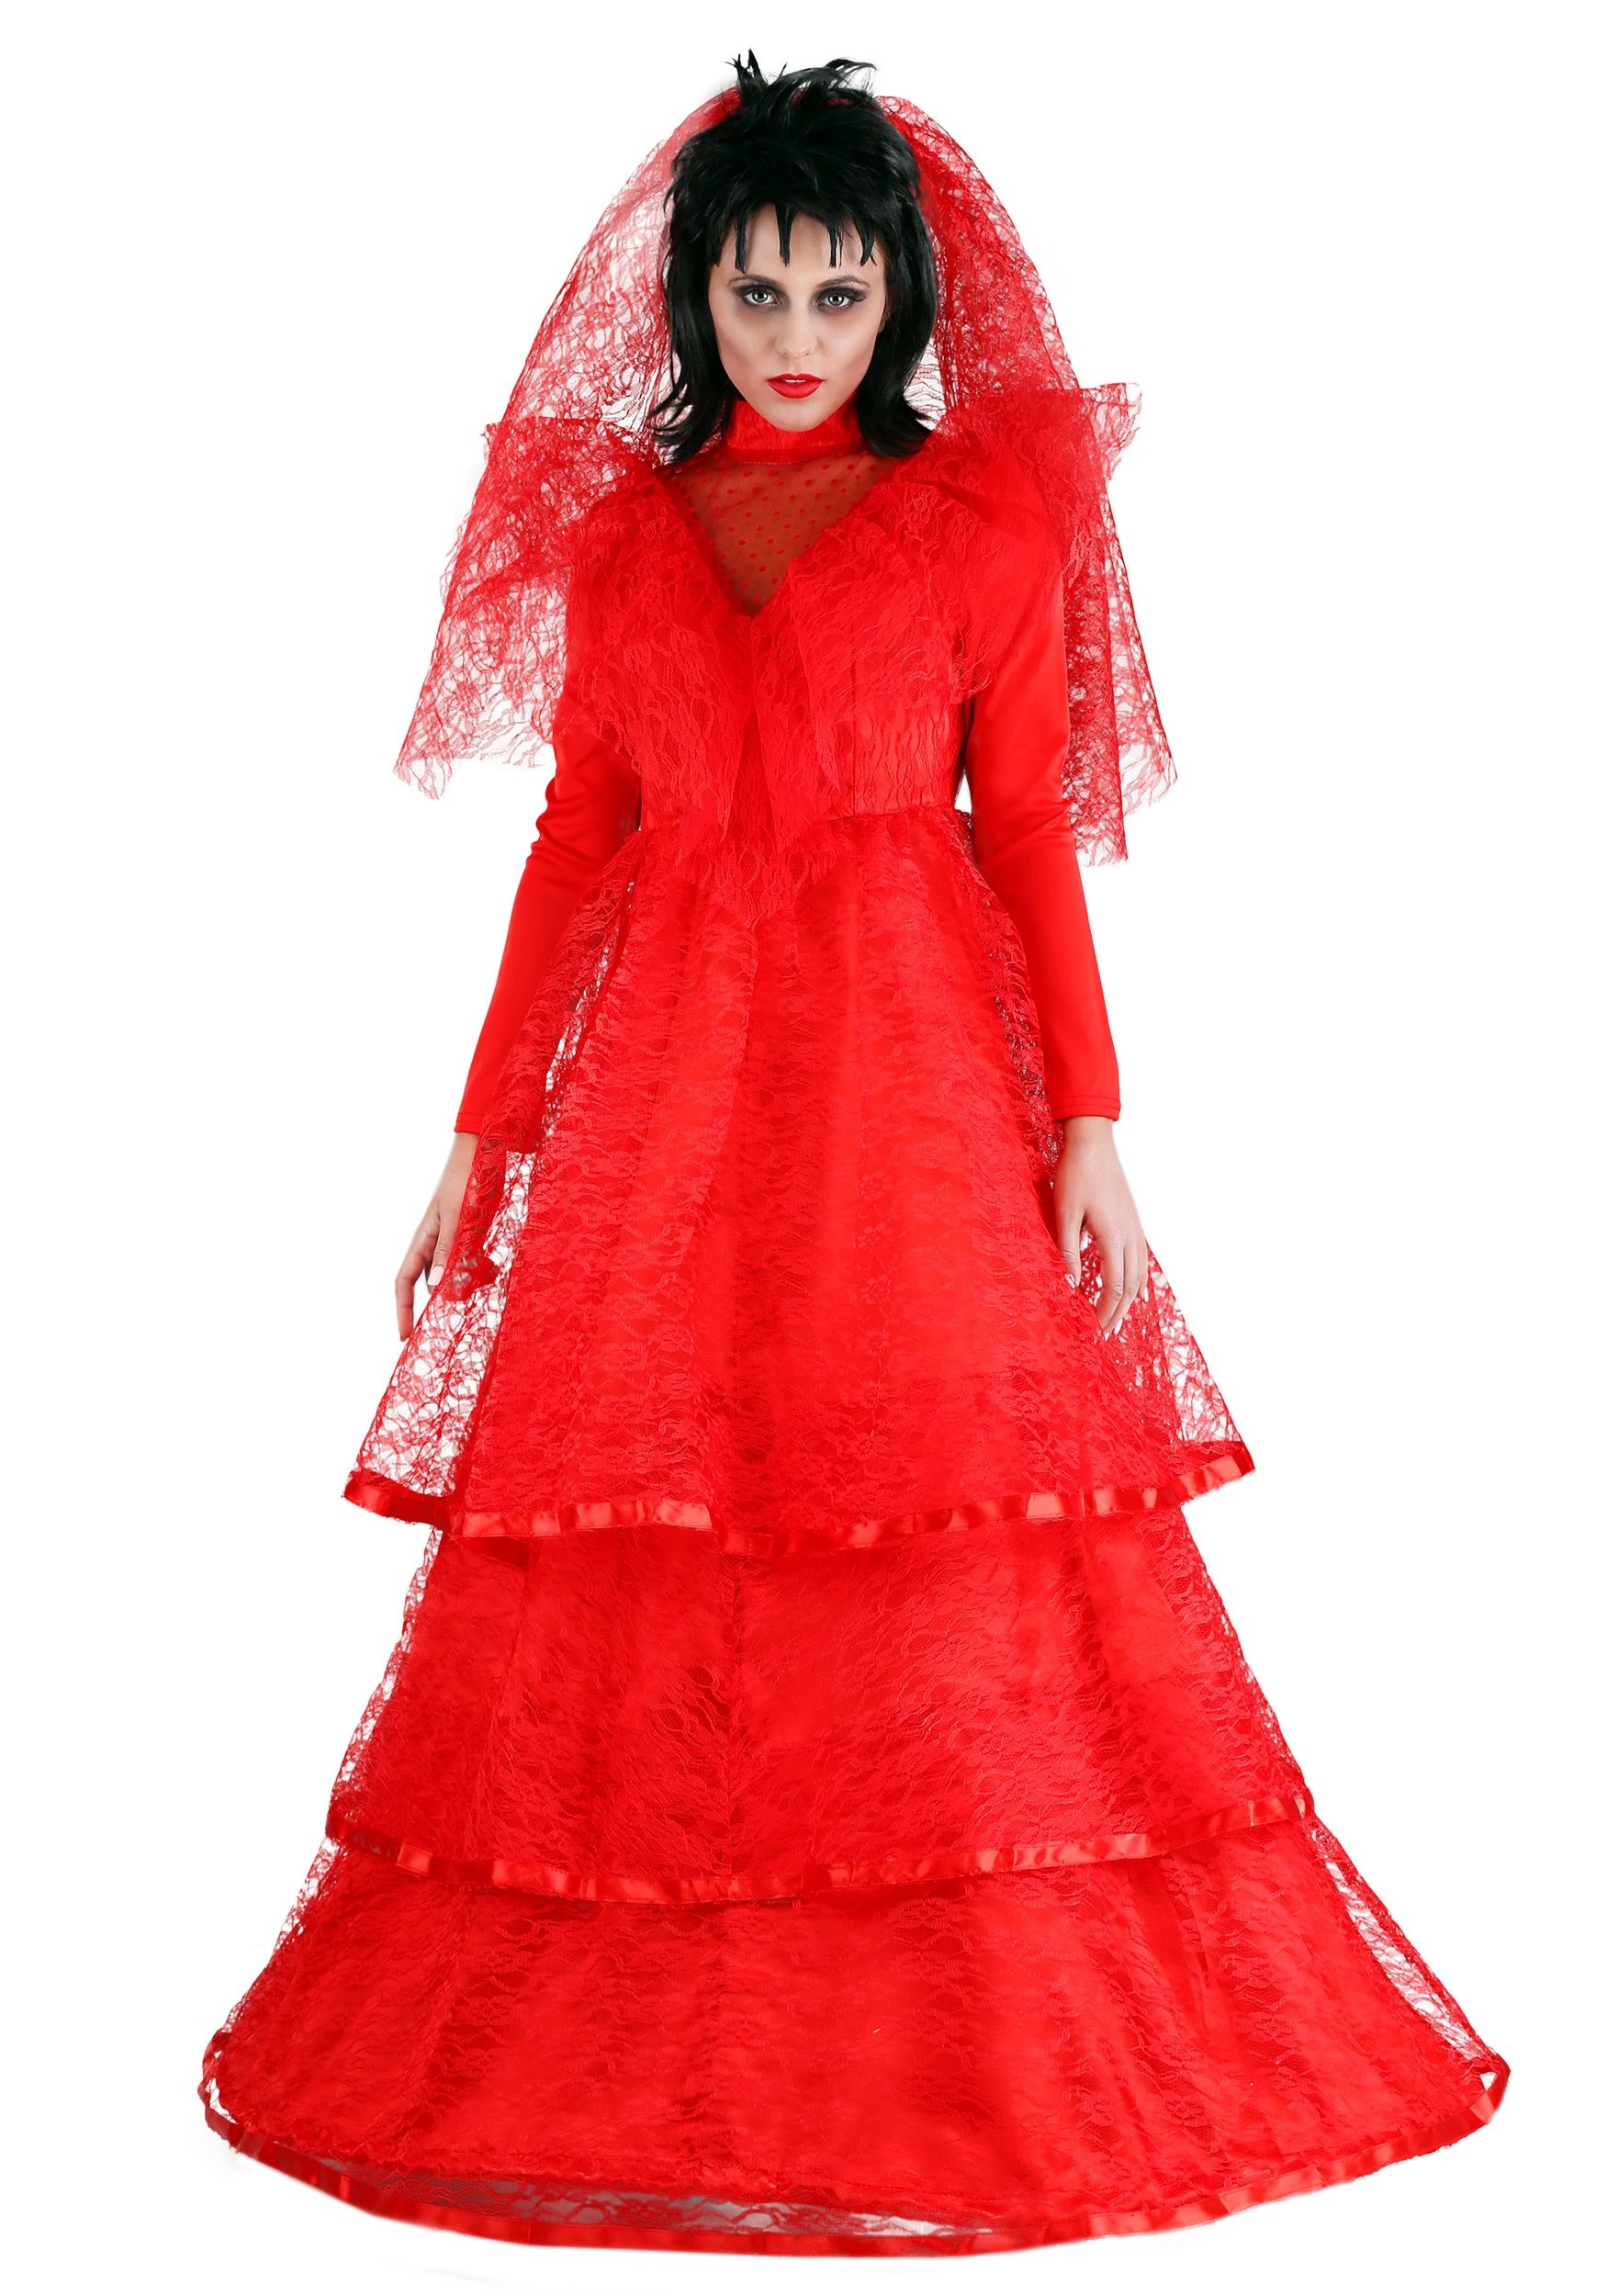 7710bca18da Red Gothic Wedding Dress Plus Size Costume 1X 2X 3X 4X 5X XL XXL XXXL